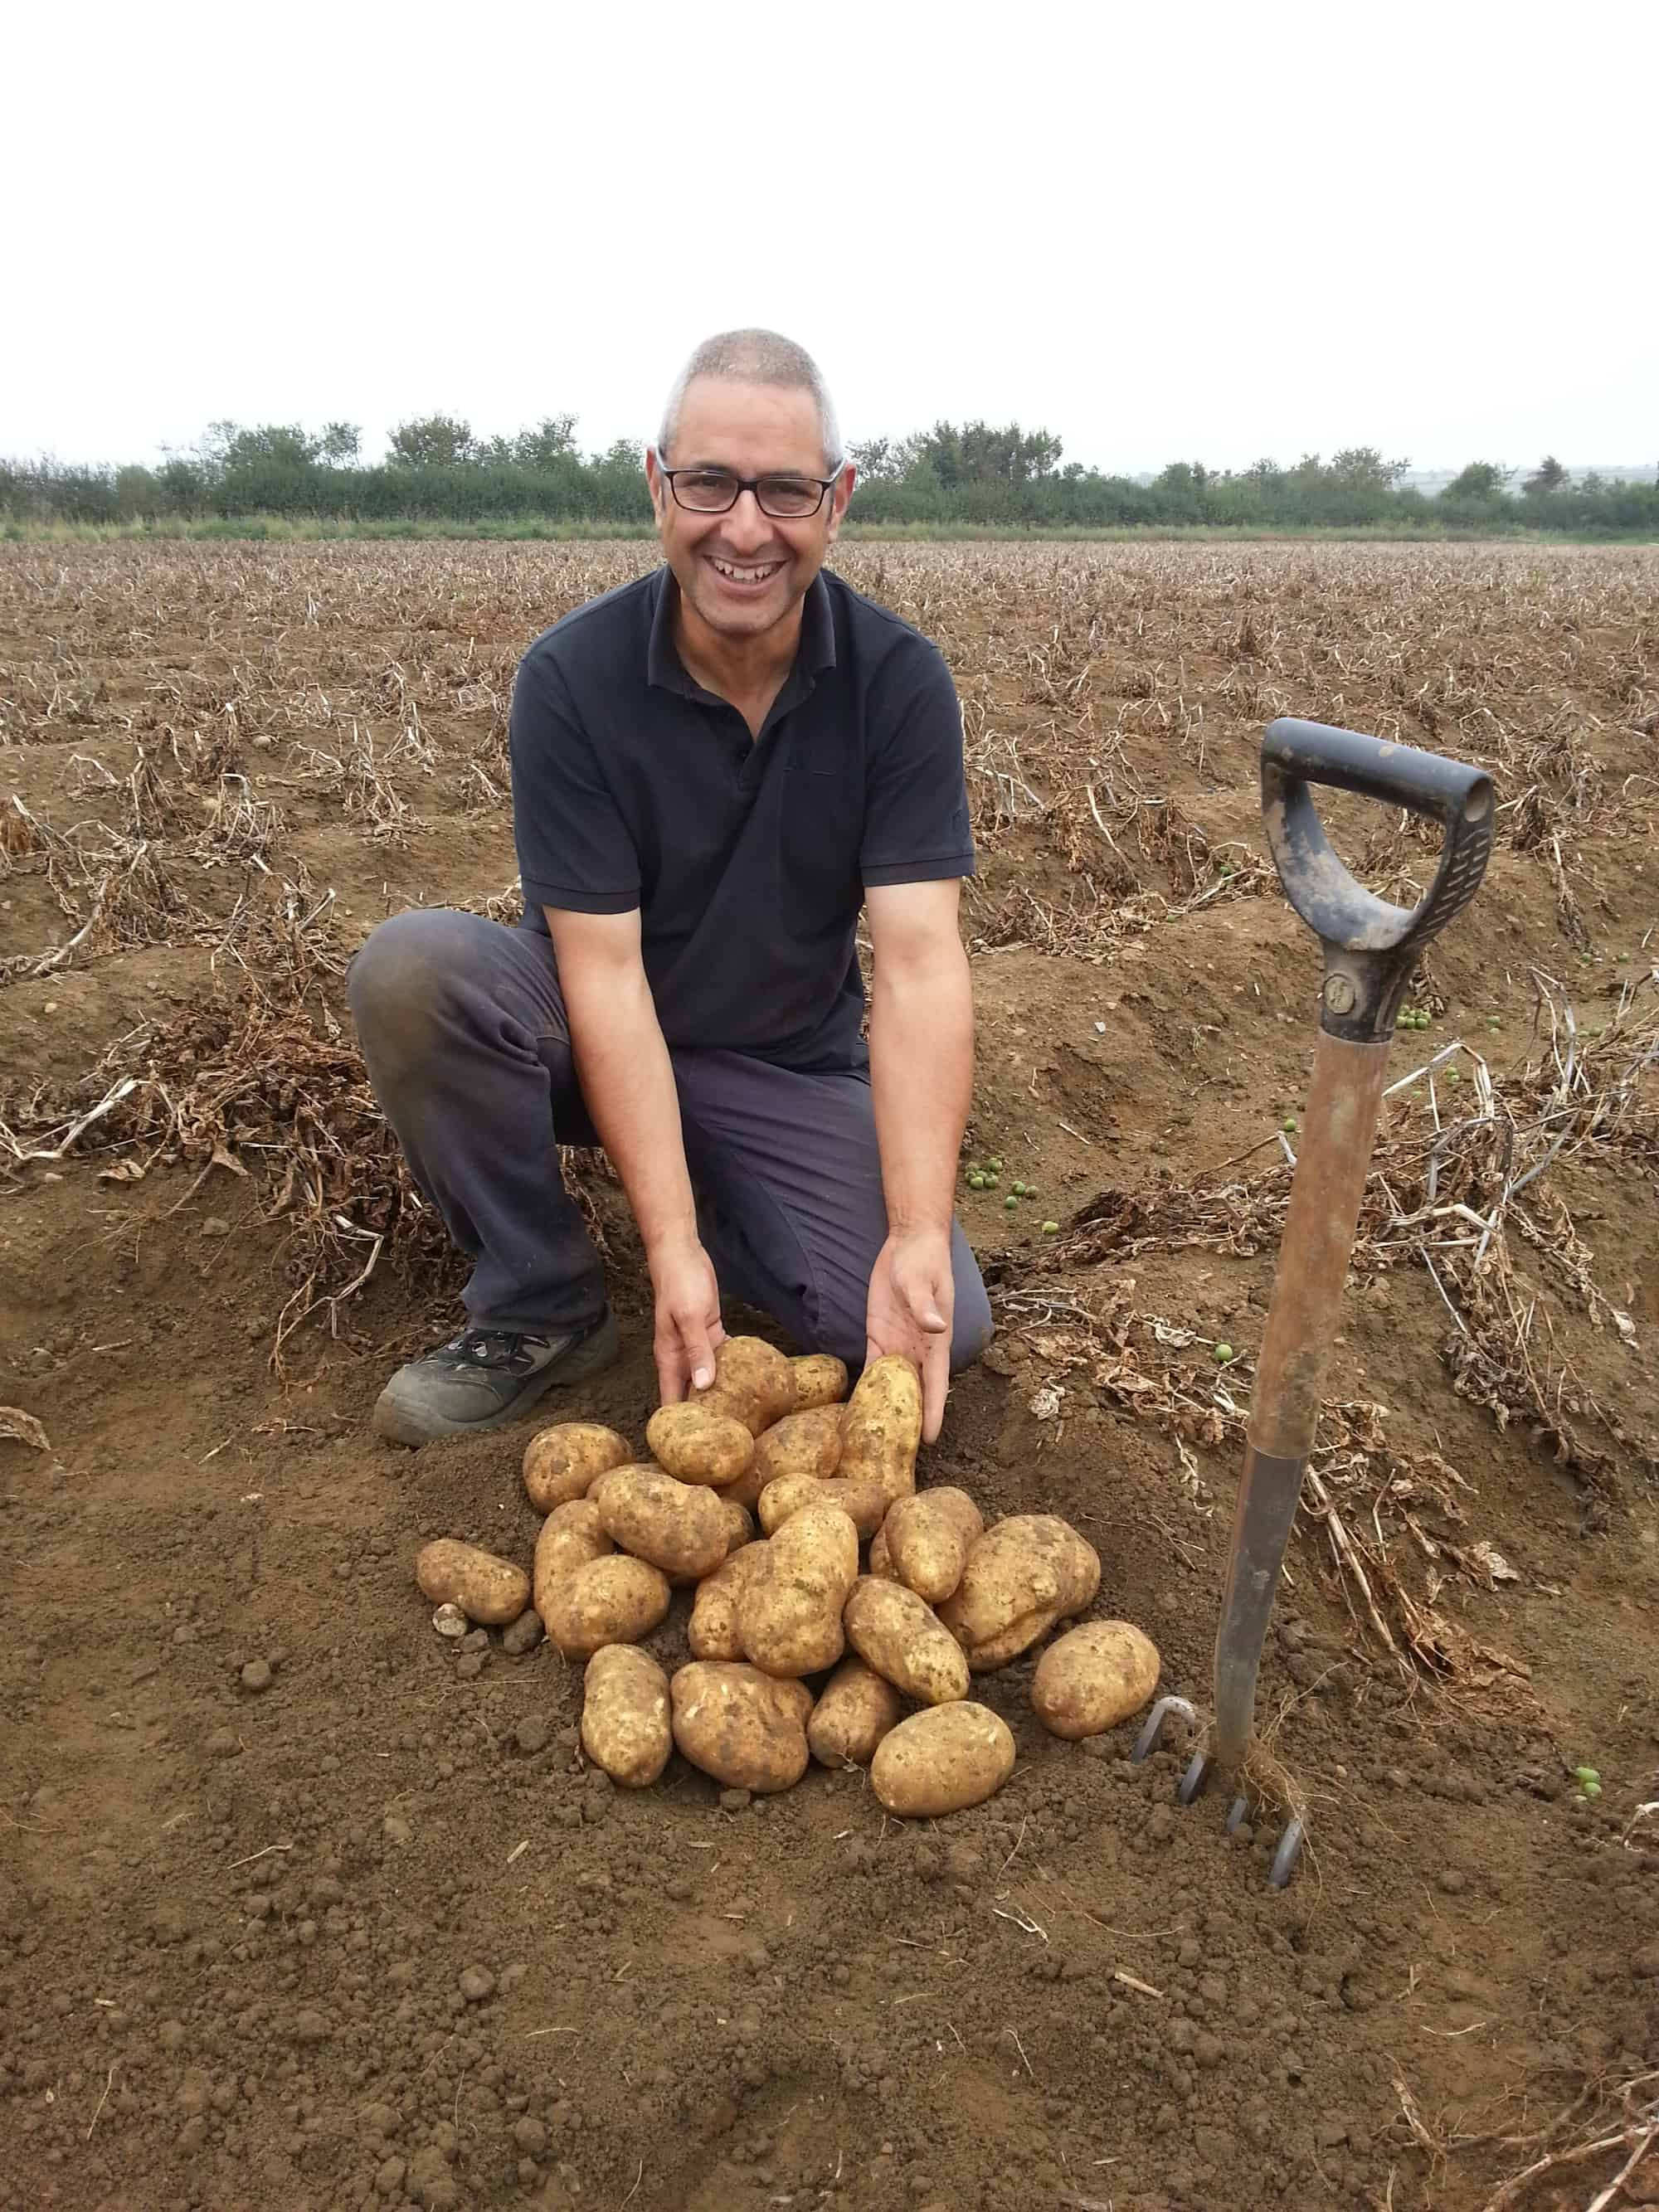 John Saurp in a potato field